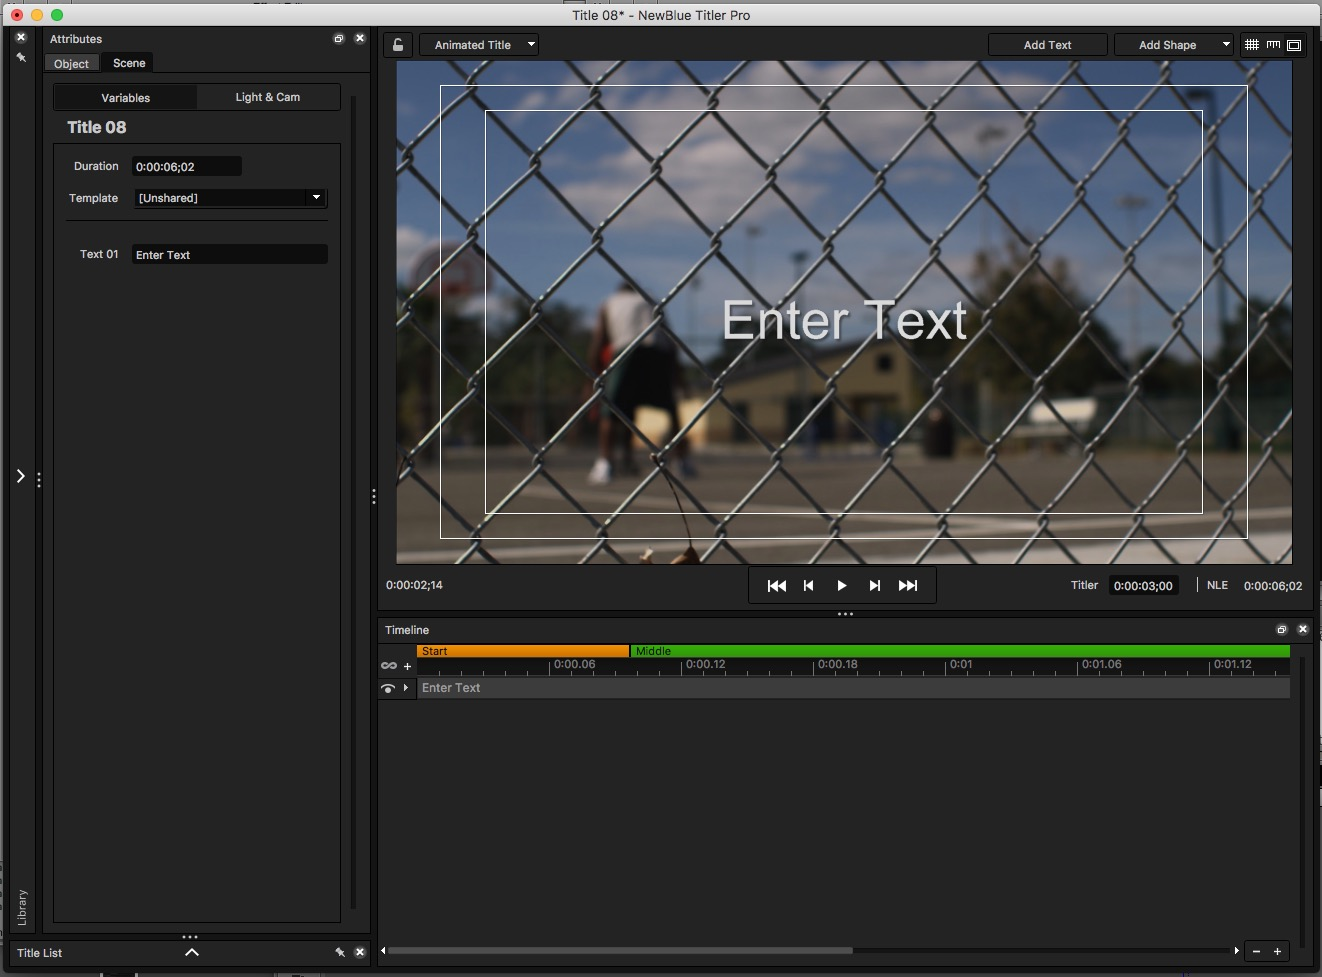 Review - Titler Pro 5 from NewBlueFX 32